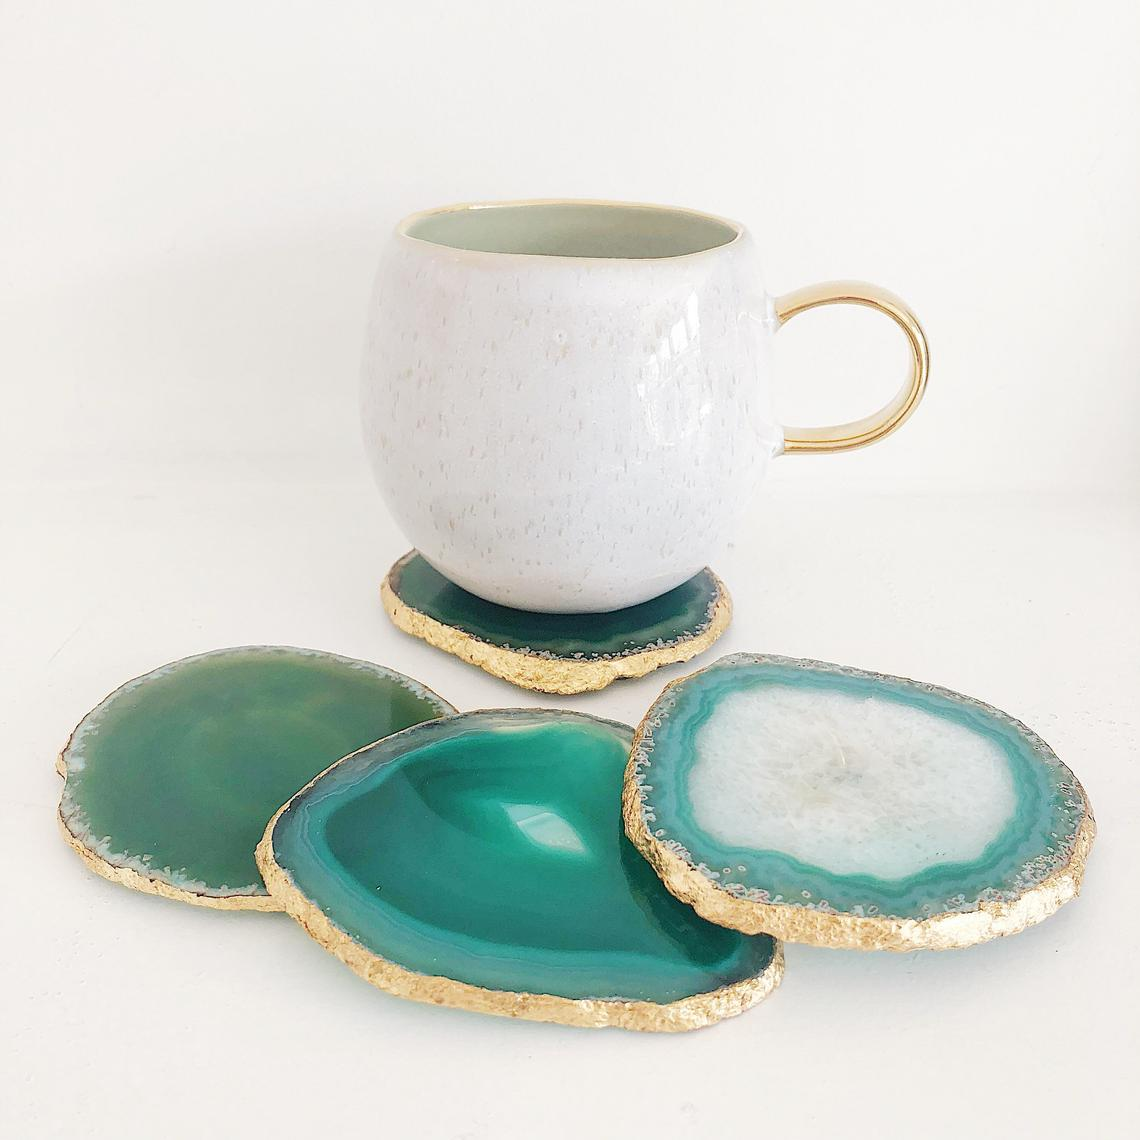 Agate coasters in green with a gold edge